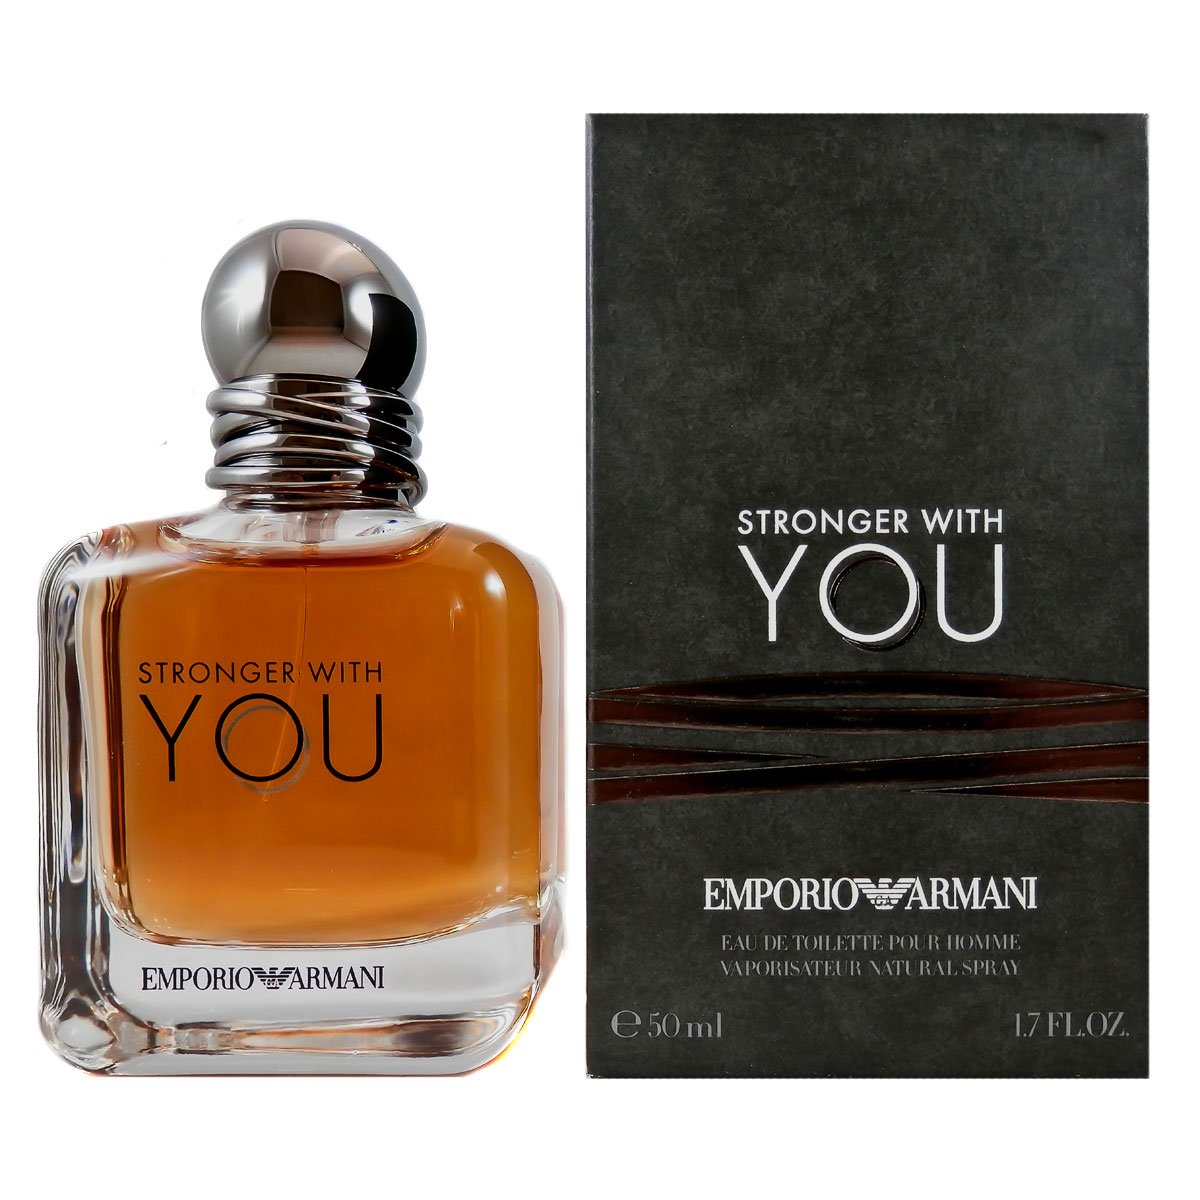 Emporio Eau Armani 50 Ml Coiffeuse Stronger Homme De With You 35Ac4LqRj